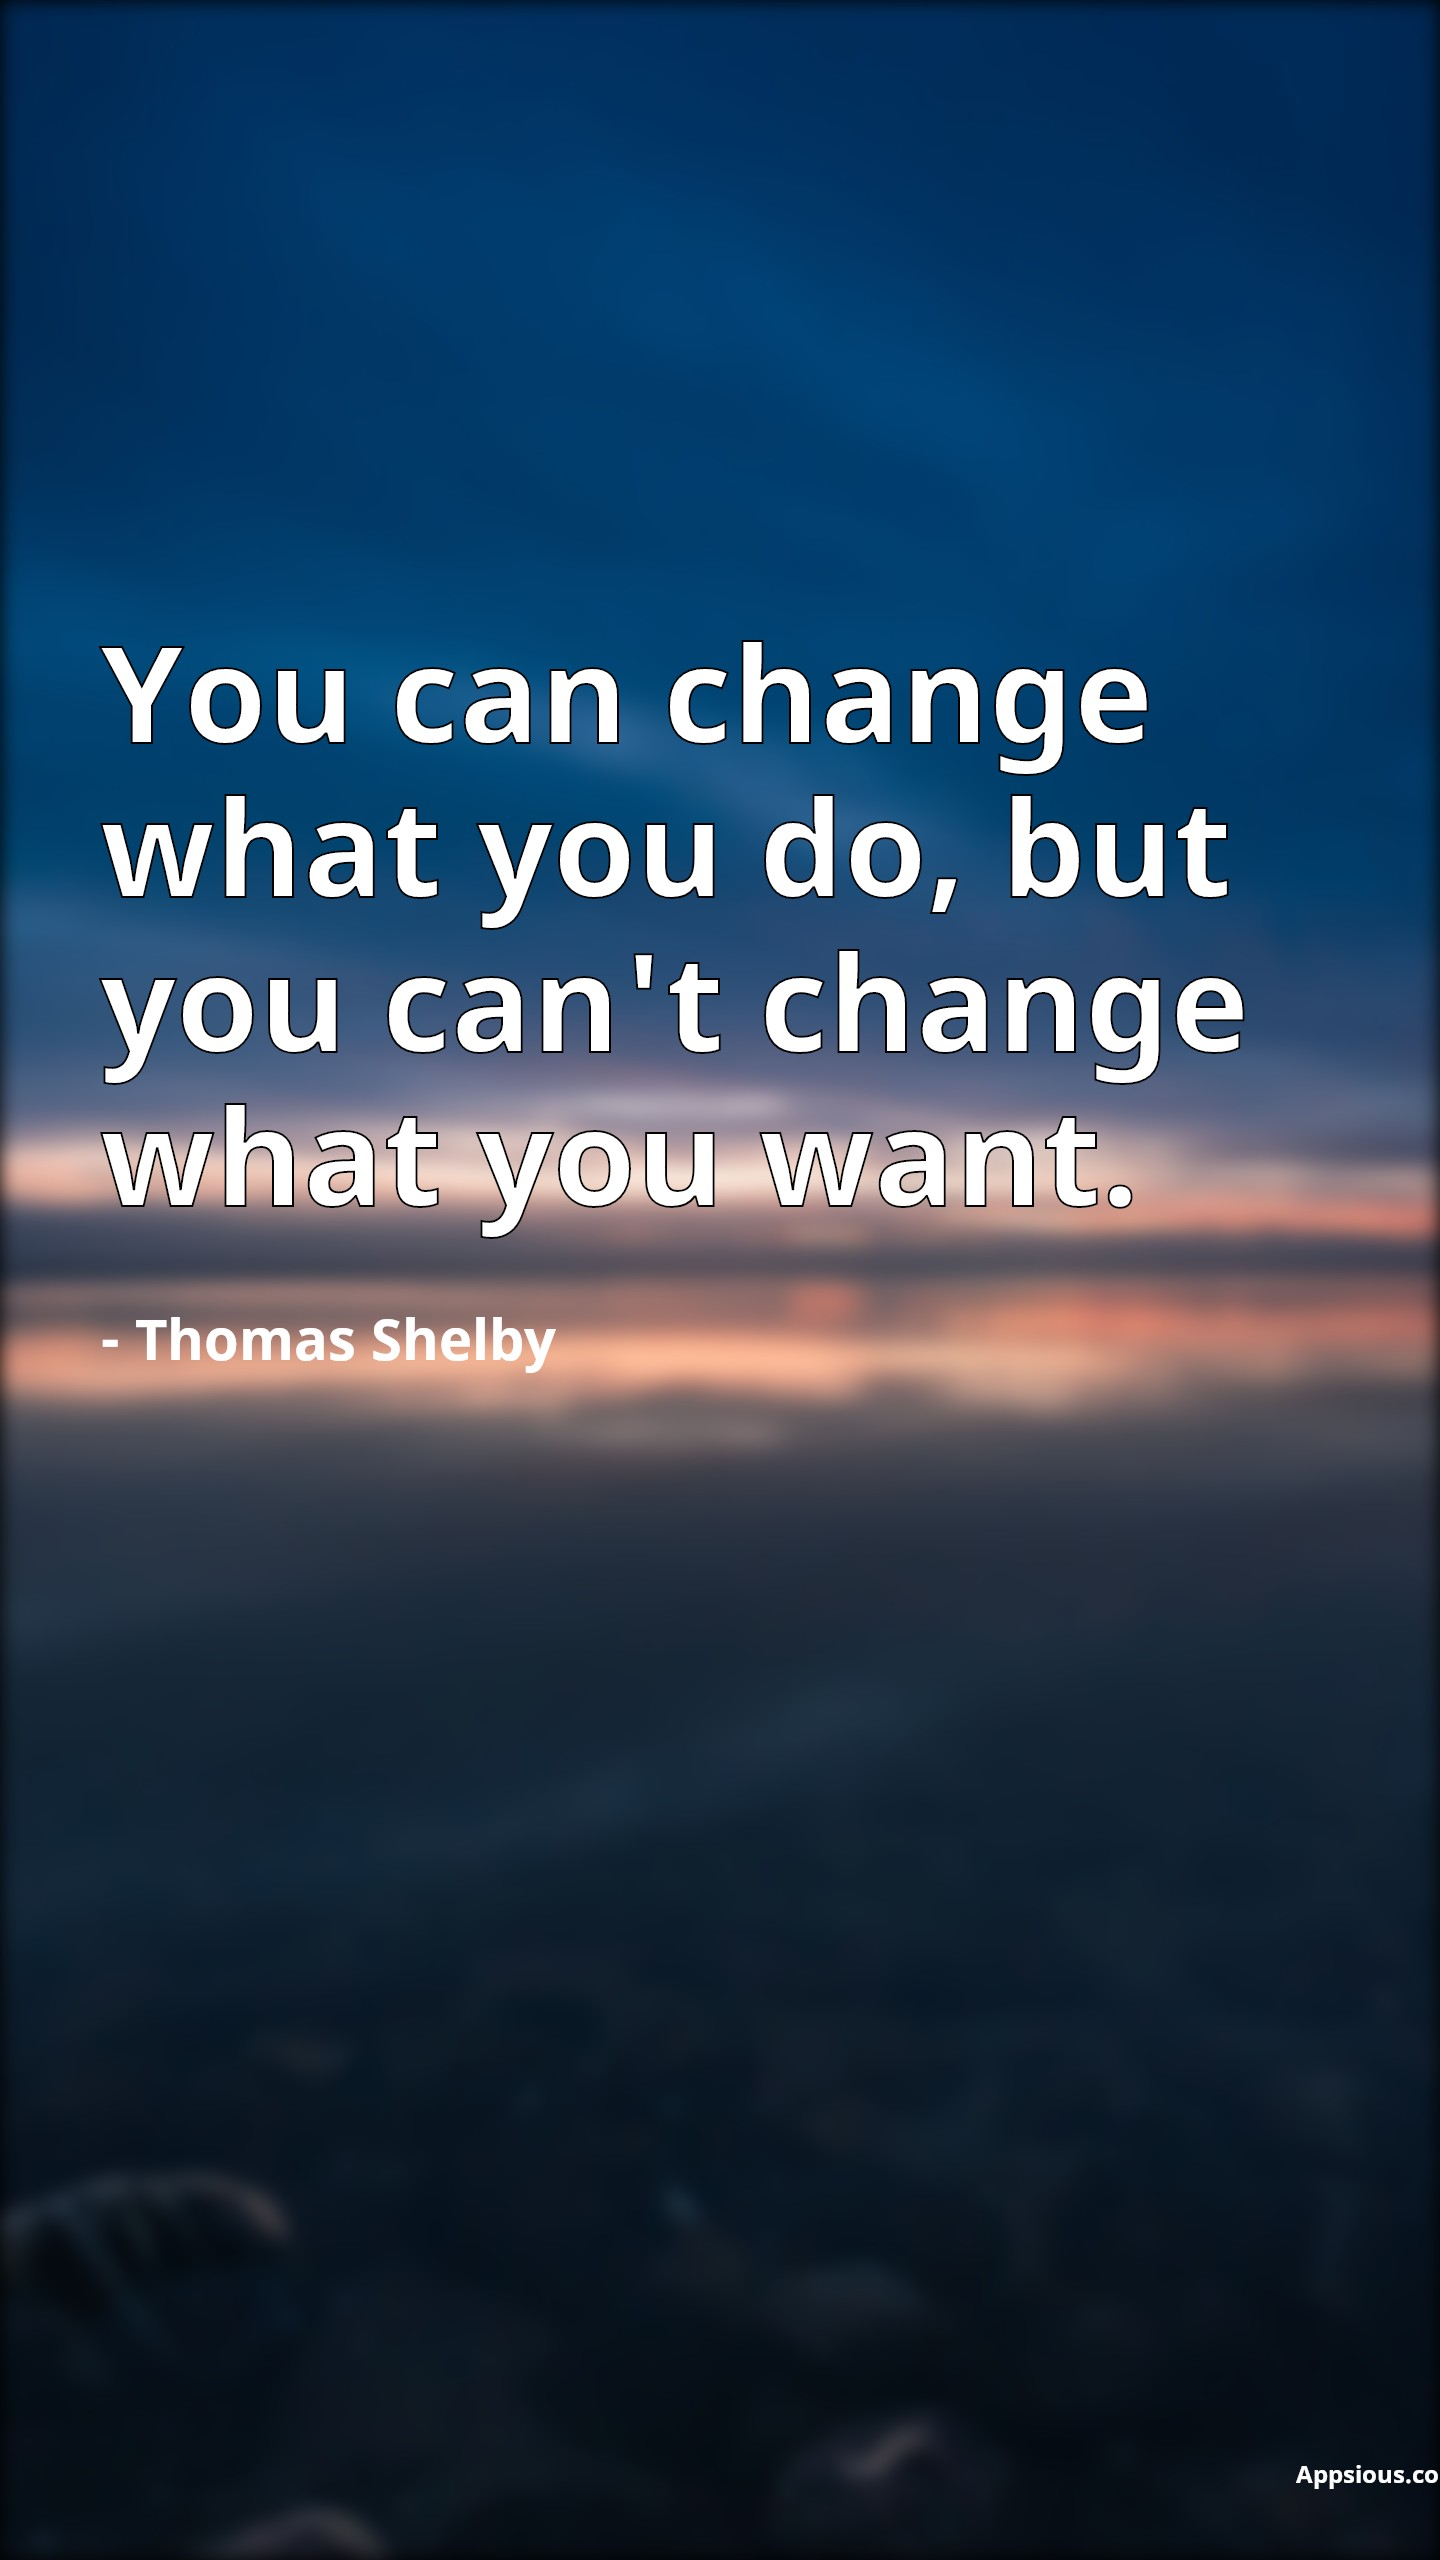 You can change what you do, but you can't change what you want.